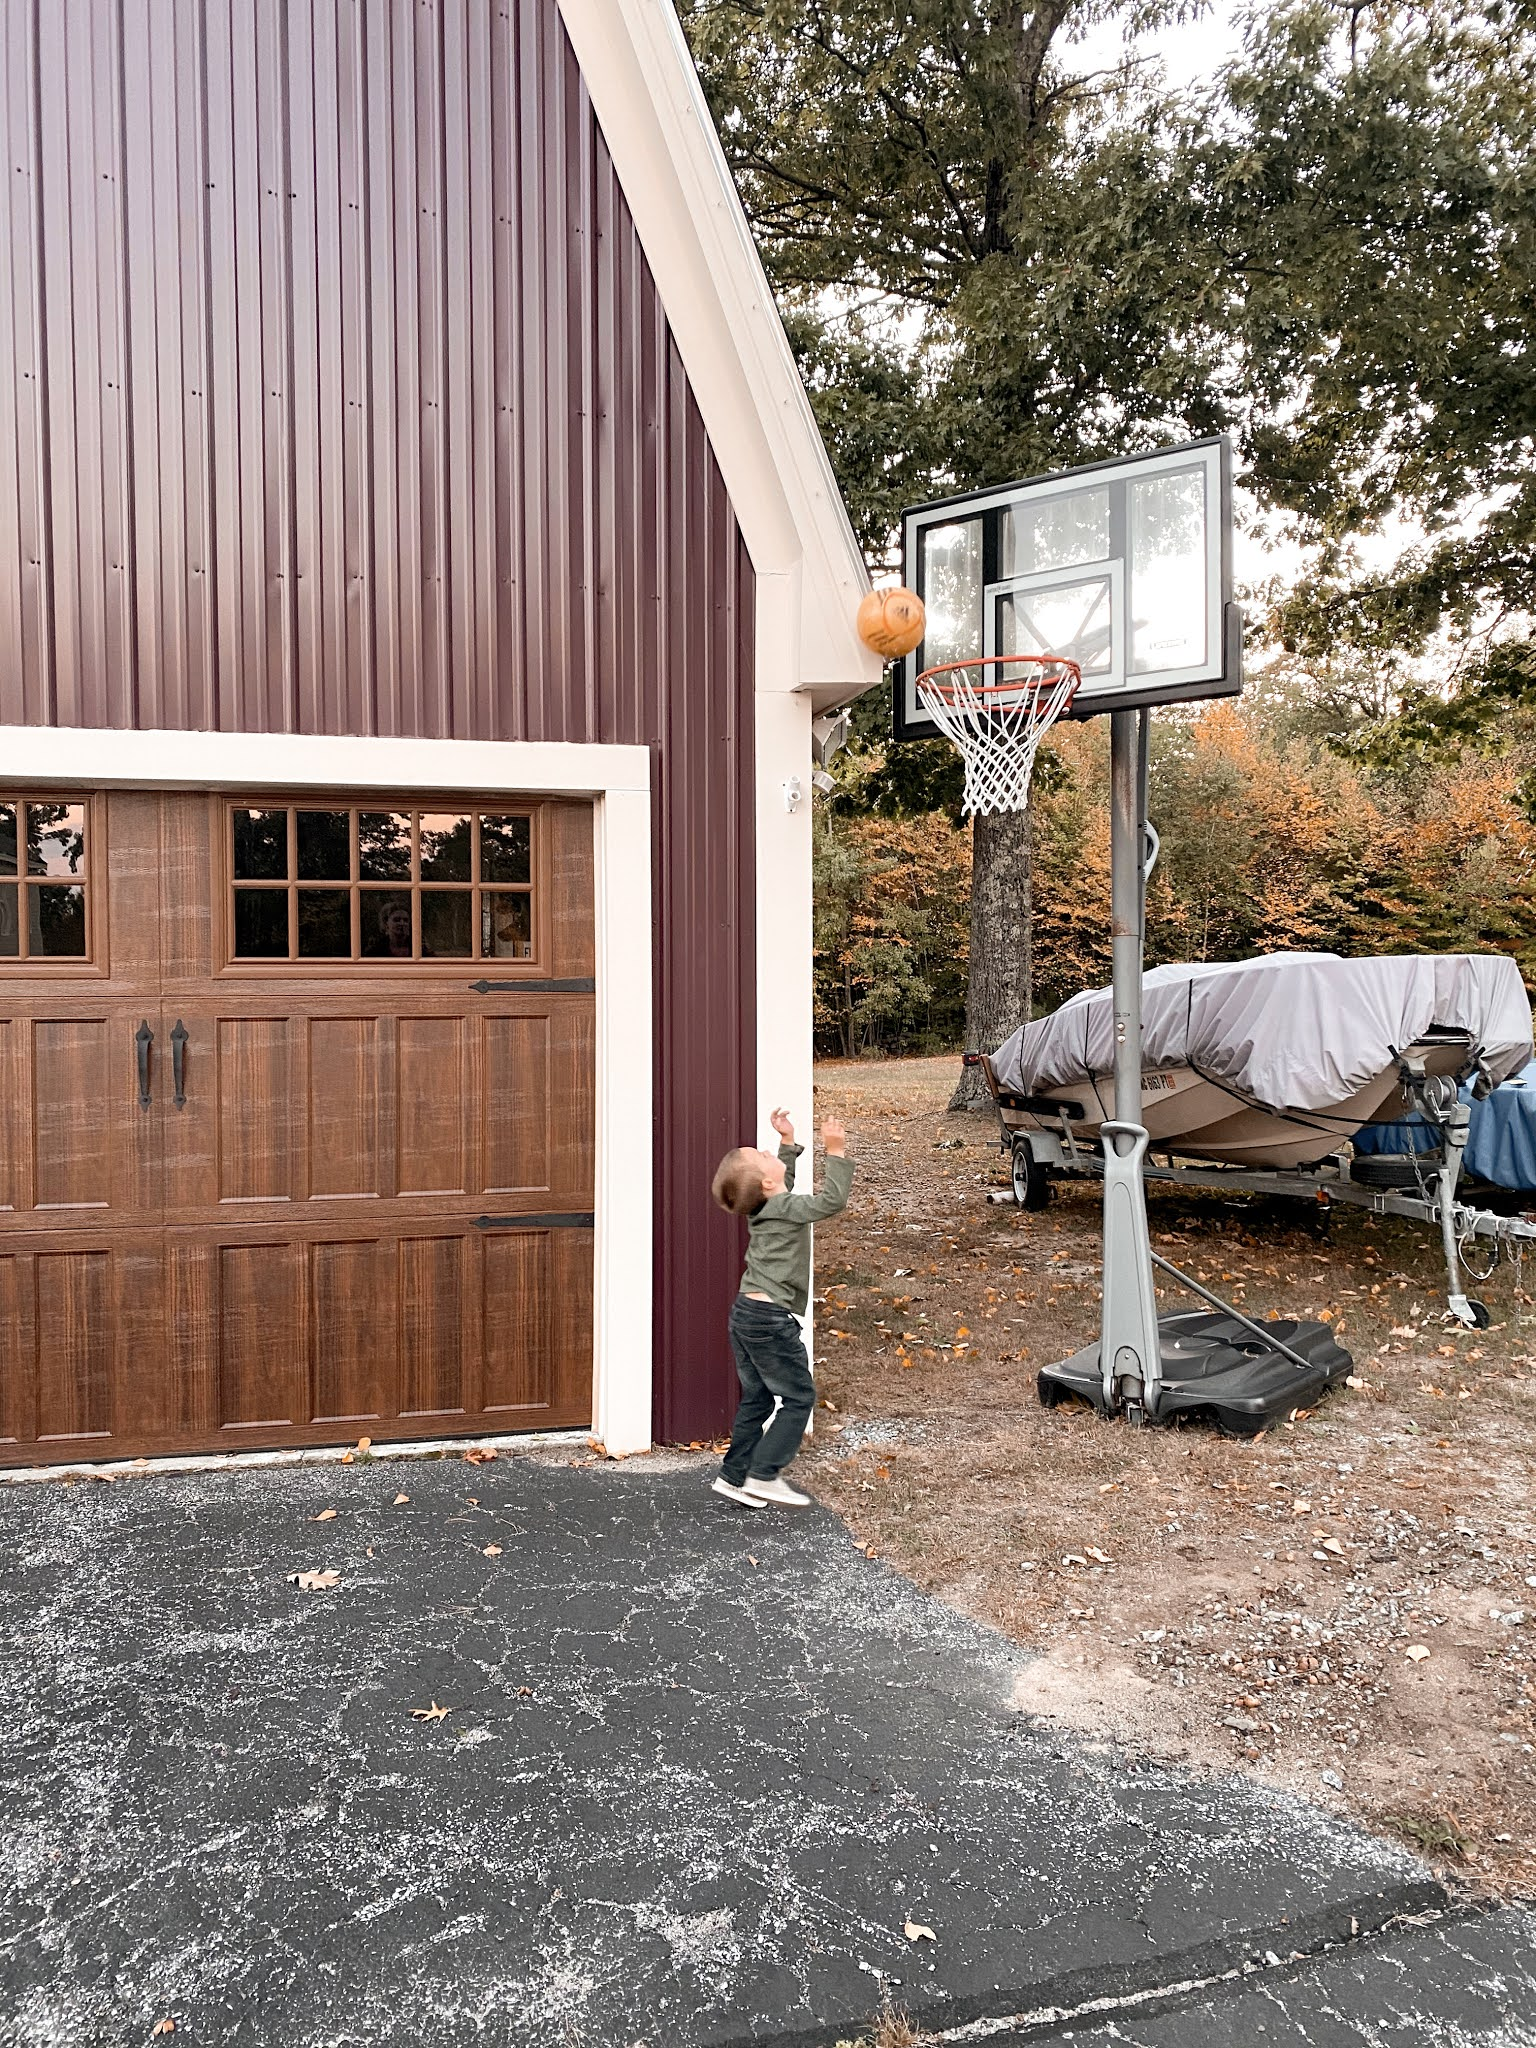 Playing Hoops in Weare, NH | biblio-style.com